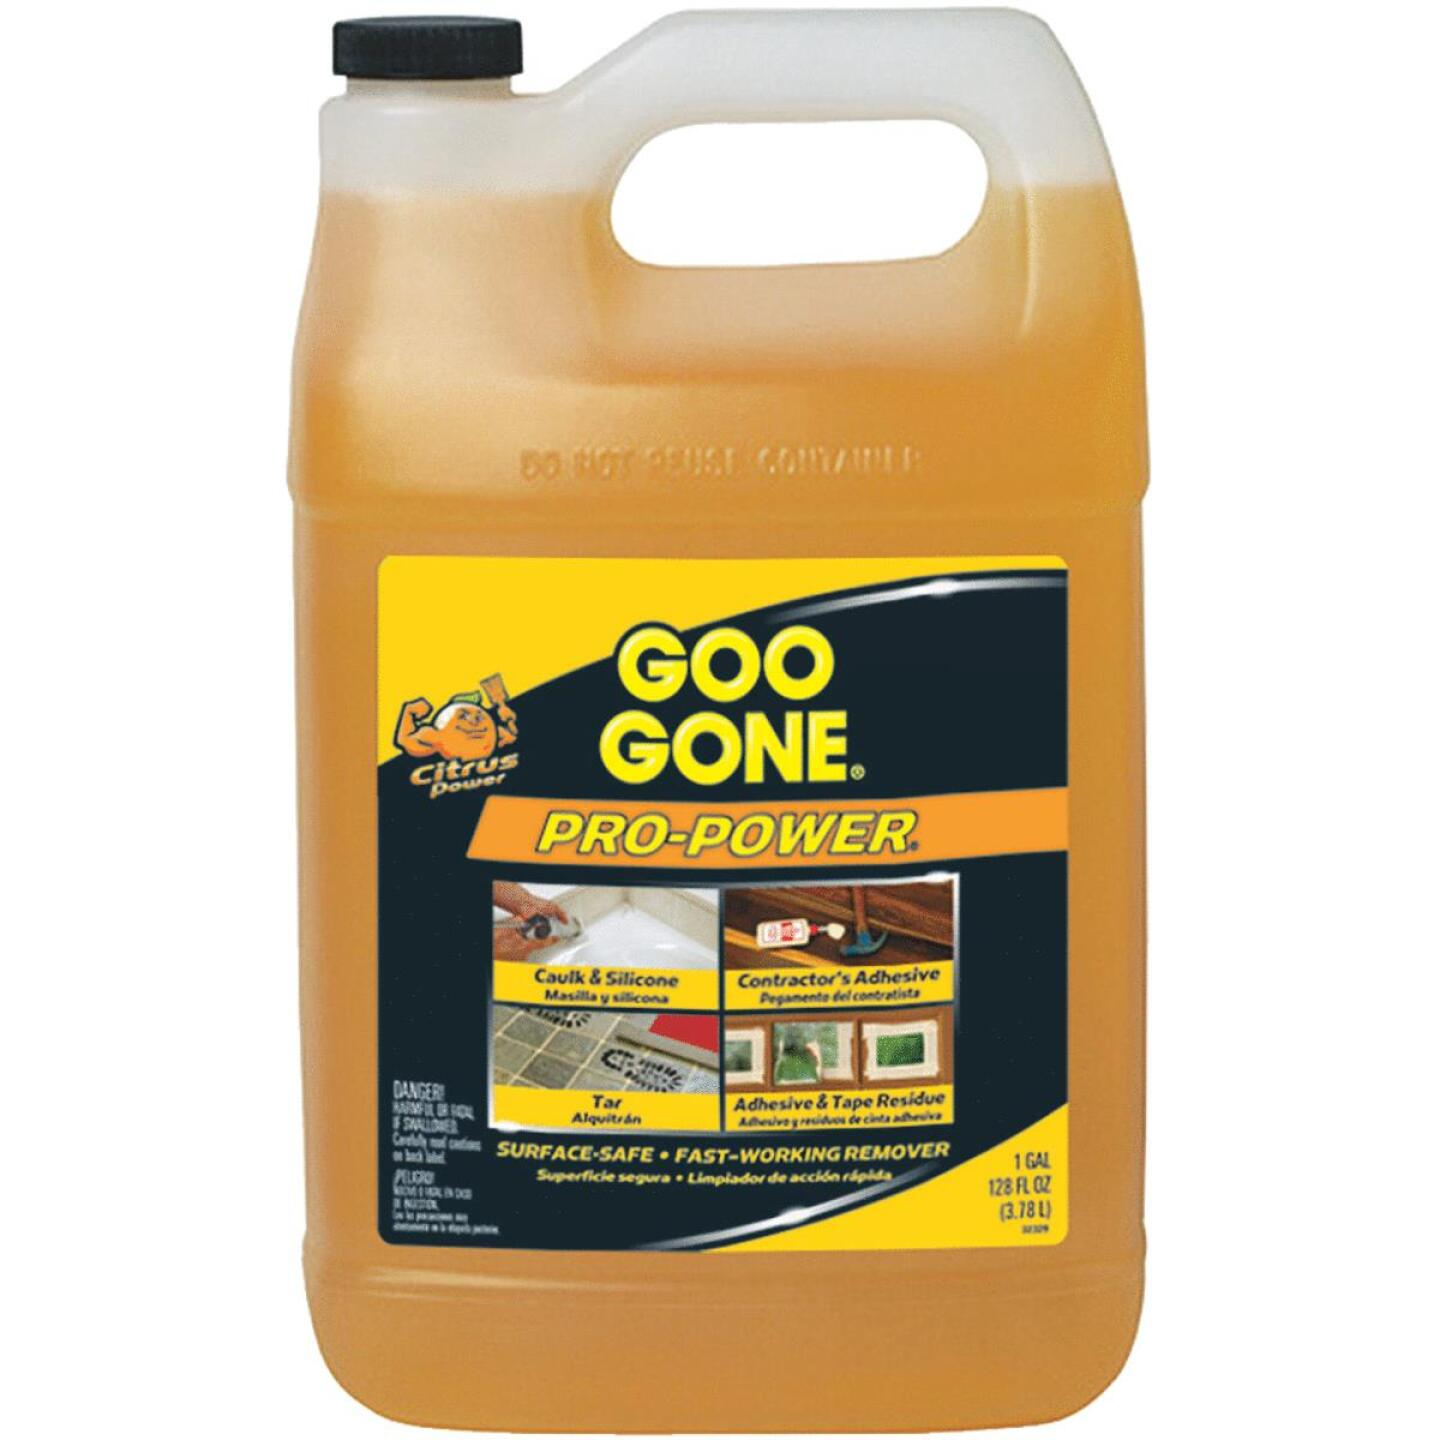 Goo Gone 1 Gal. Pro-Power Adhesive Remover Image 347